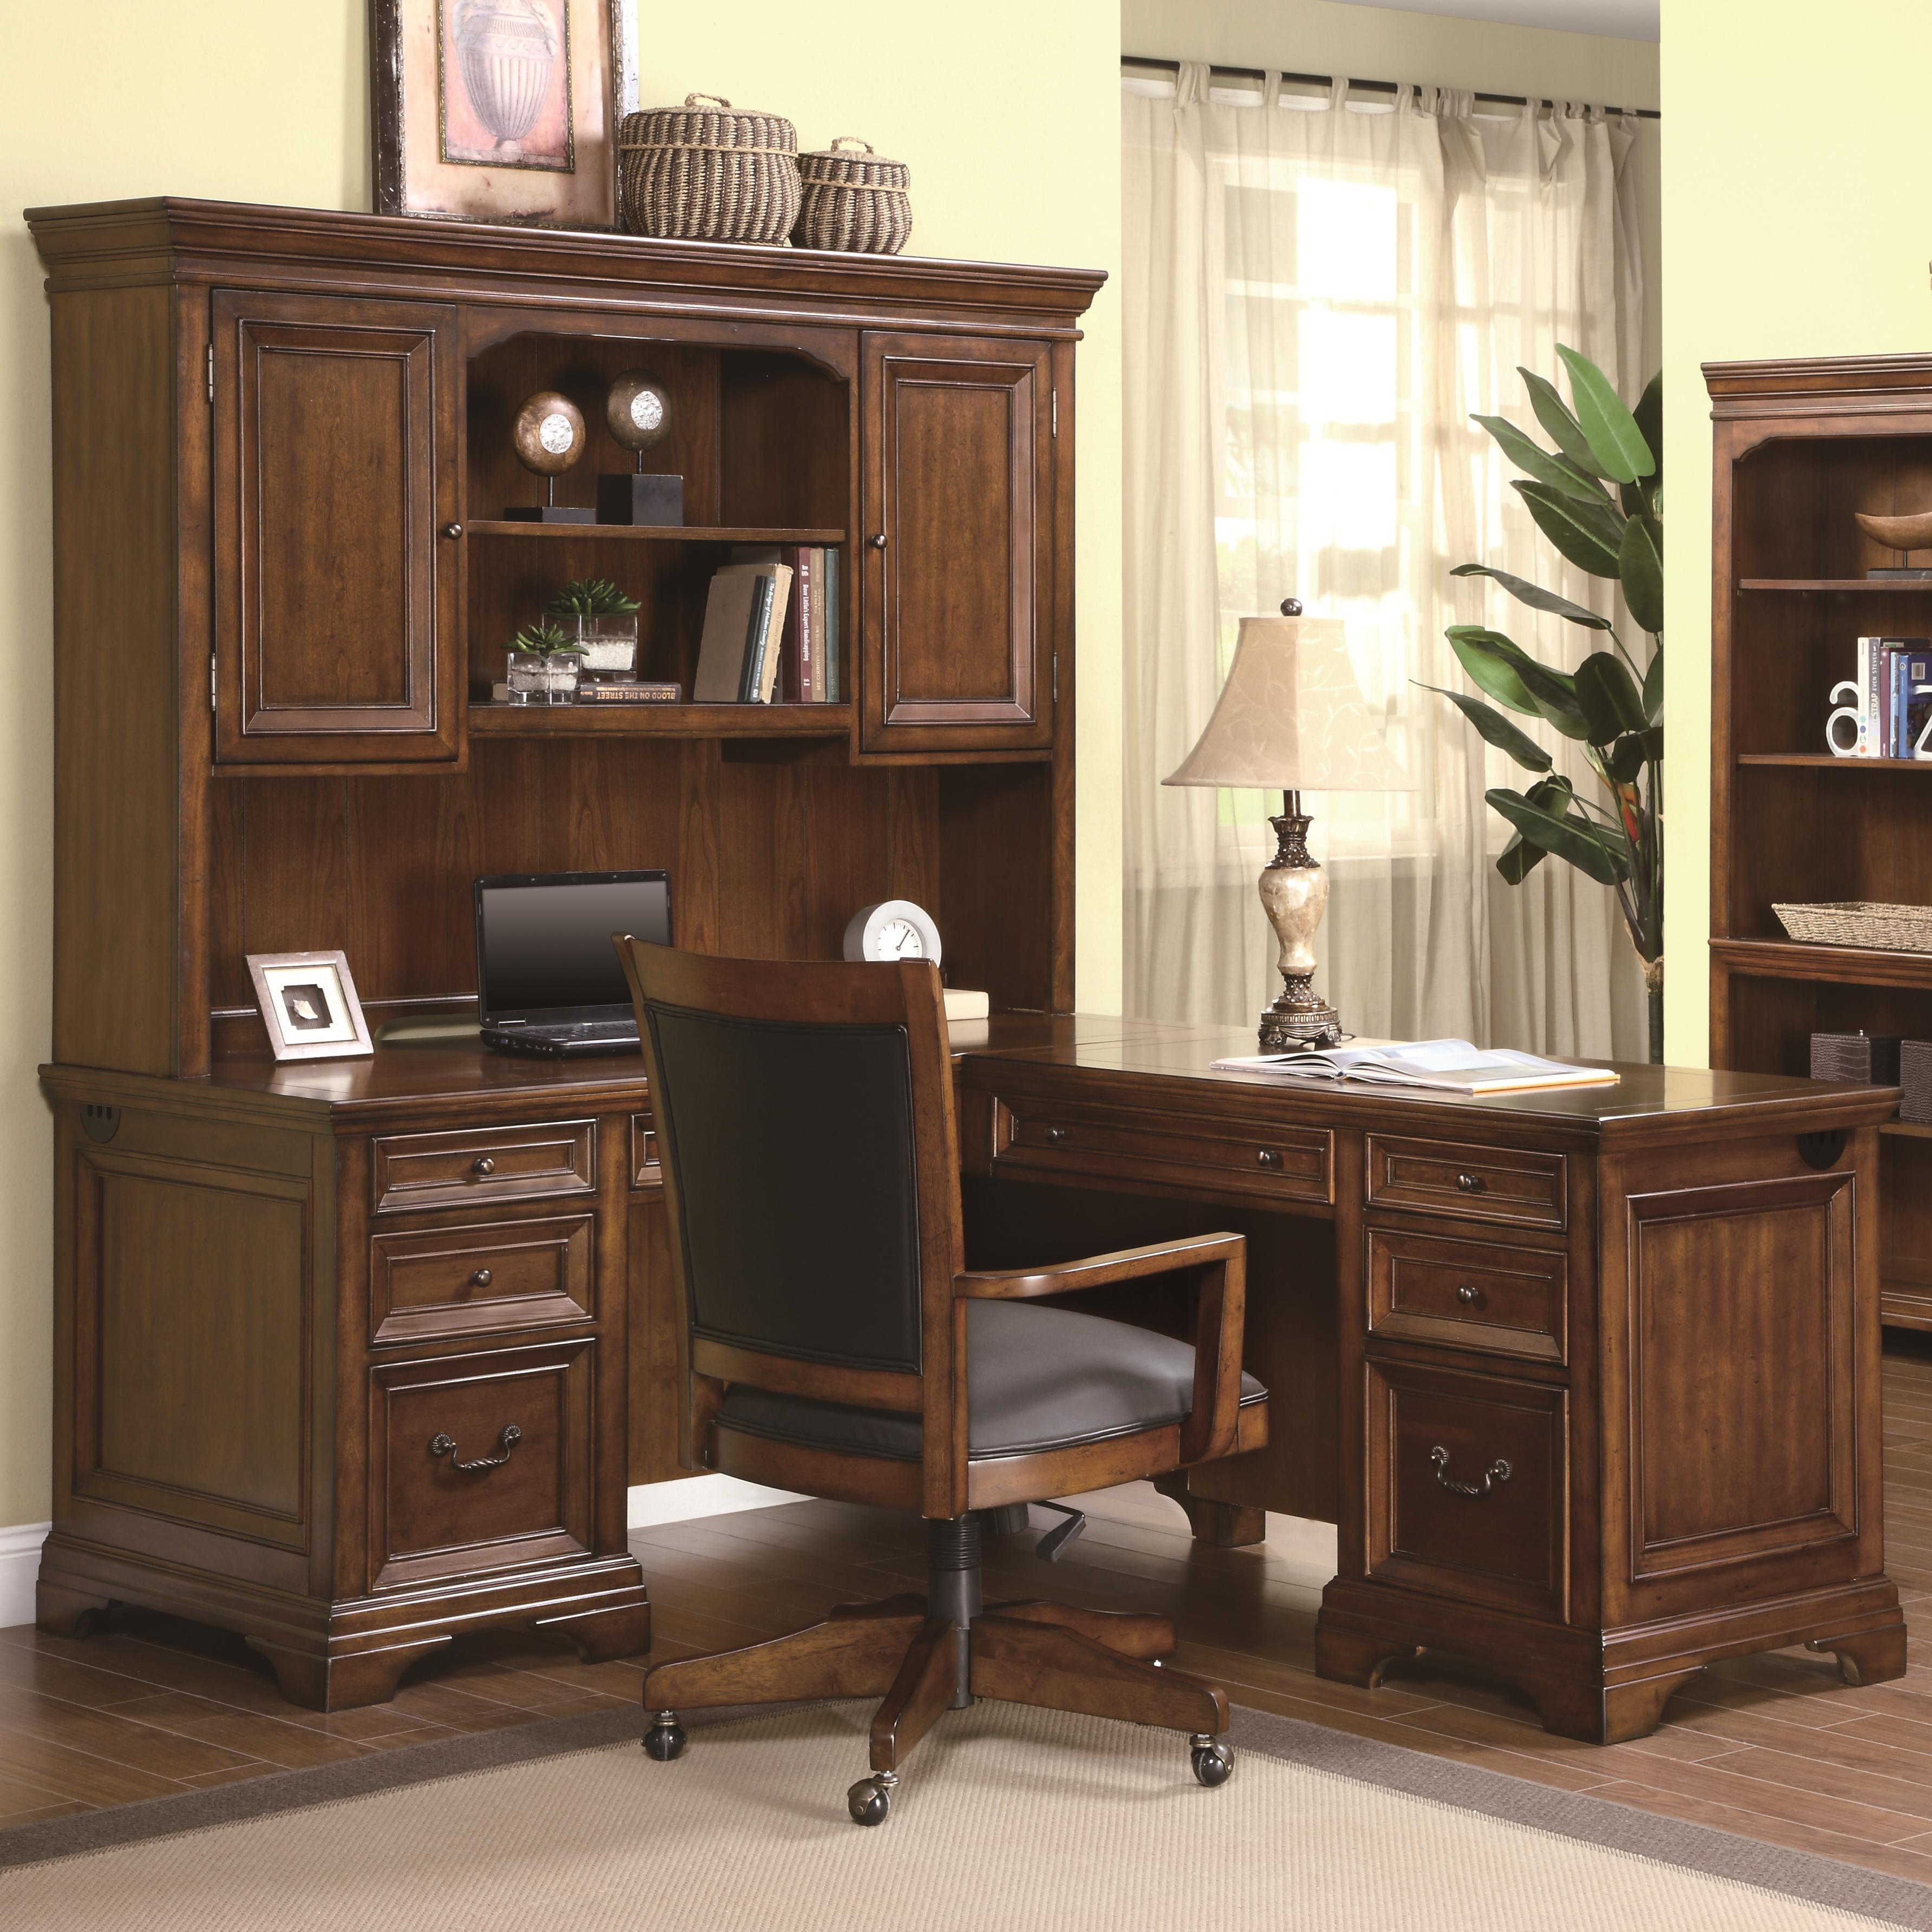 designs luxury unique with hutch and for white drawers corner cabinetry desk